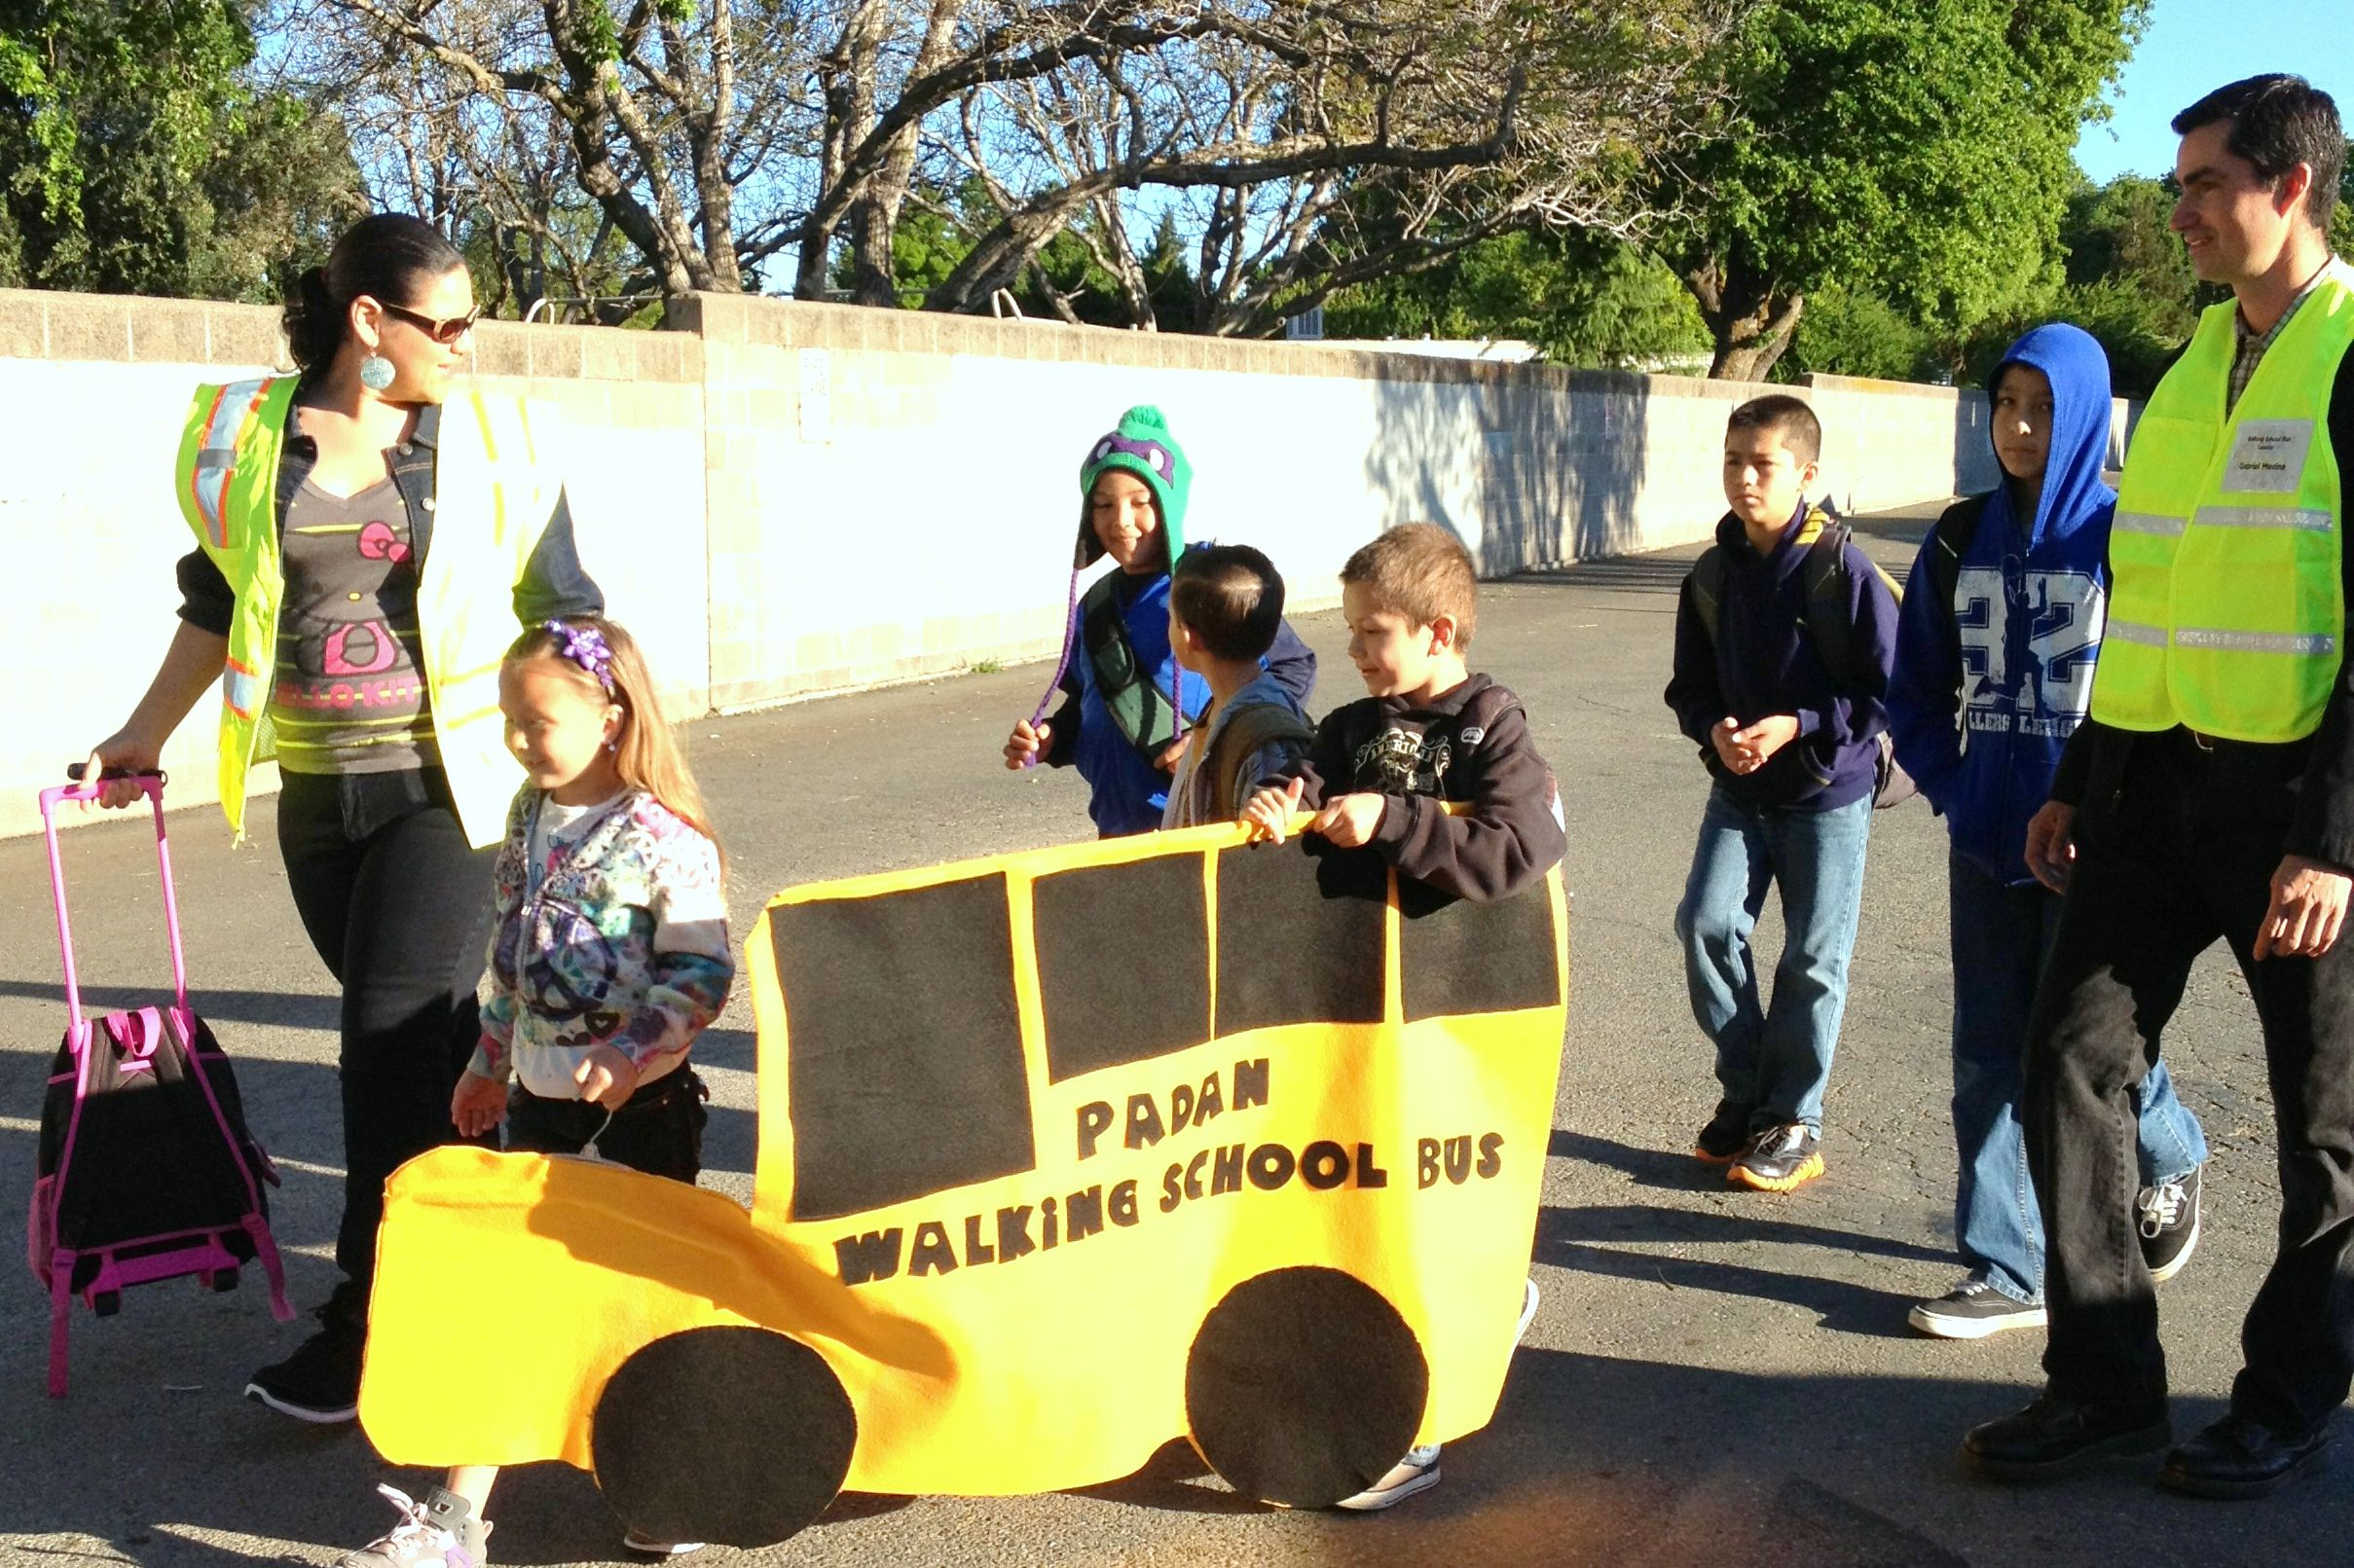 Walking School Bus from Solano Transportation Authority